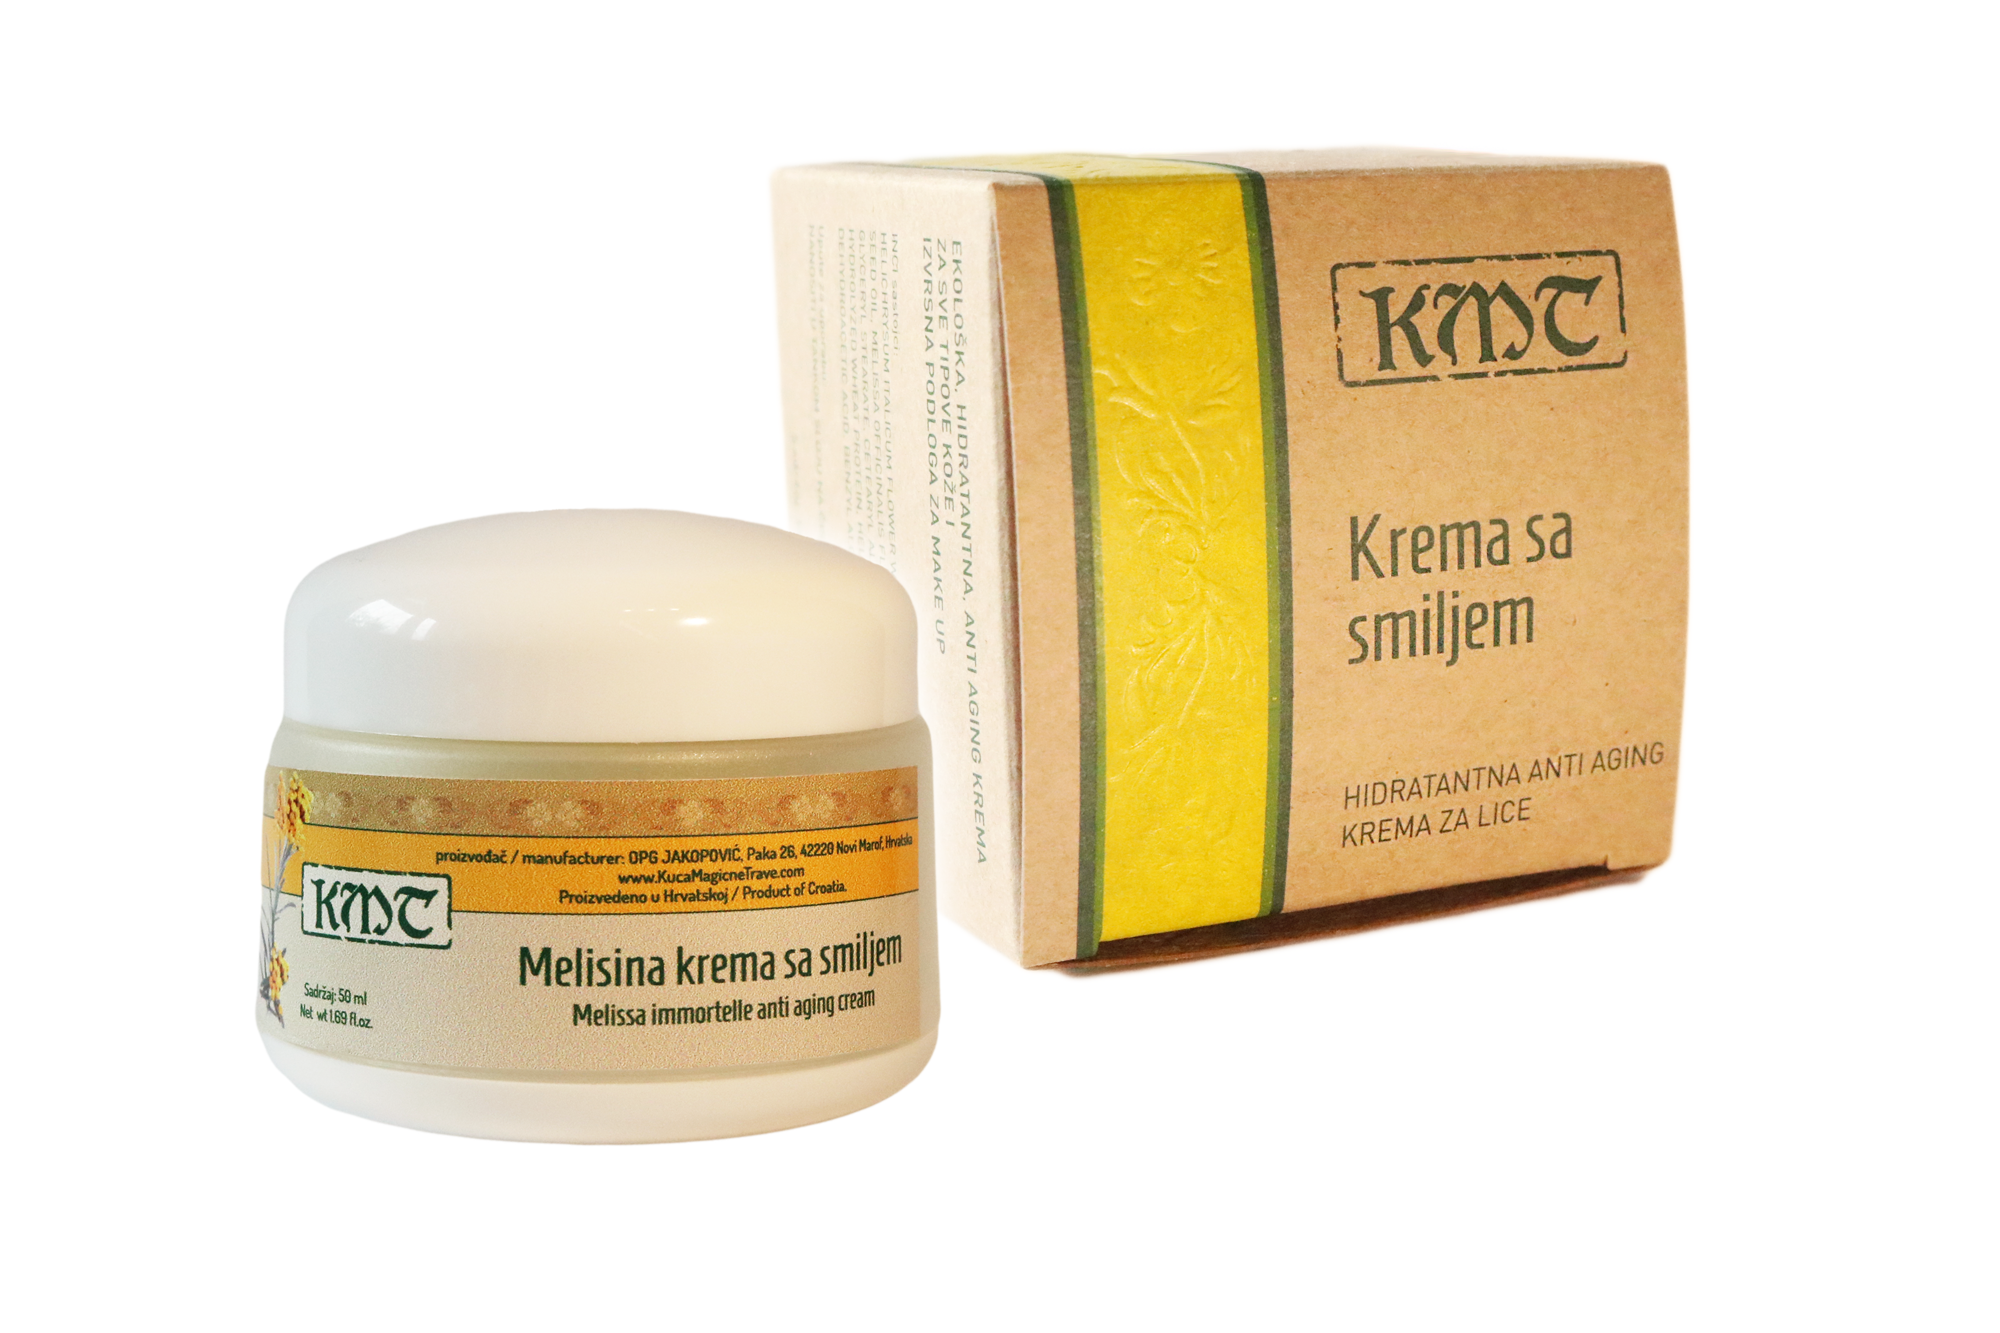 Cream with Immortelle/Krema sa smiljem